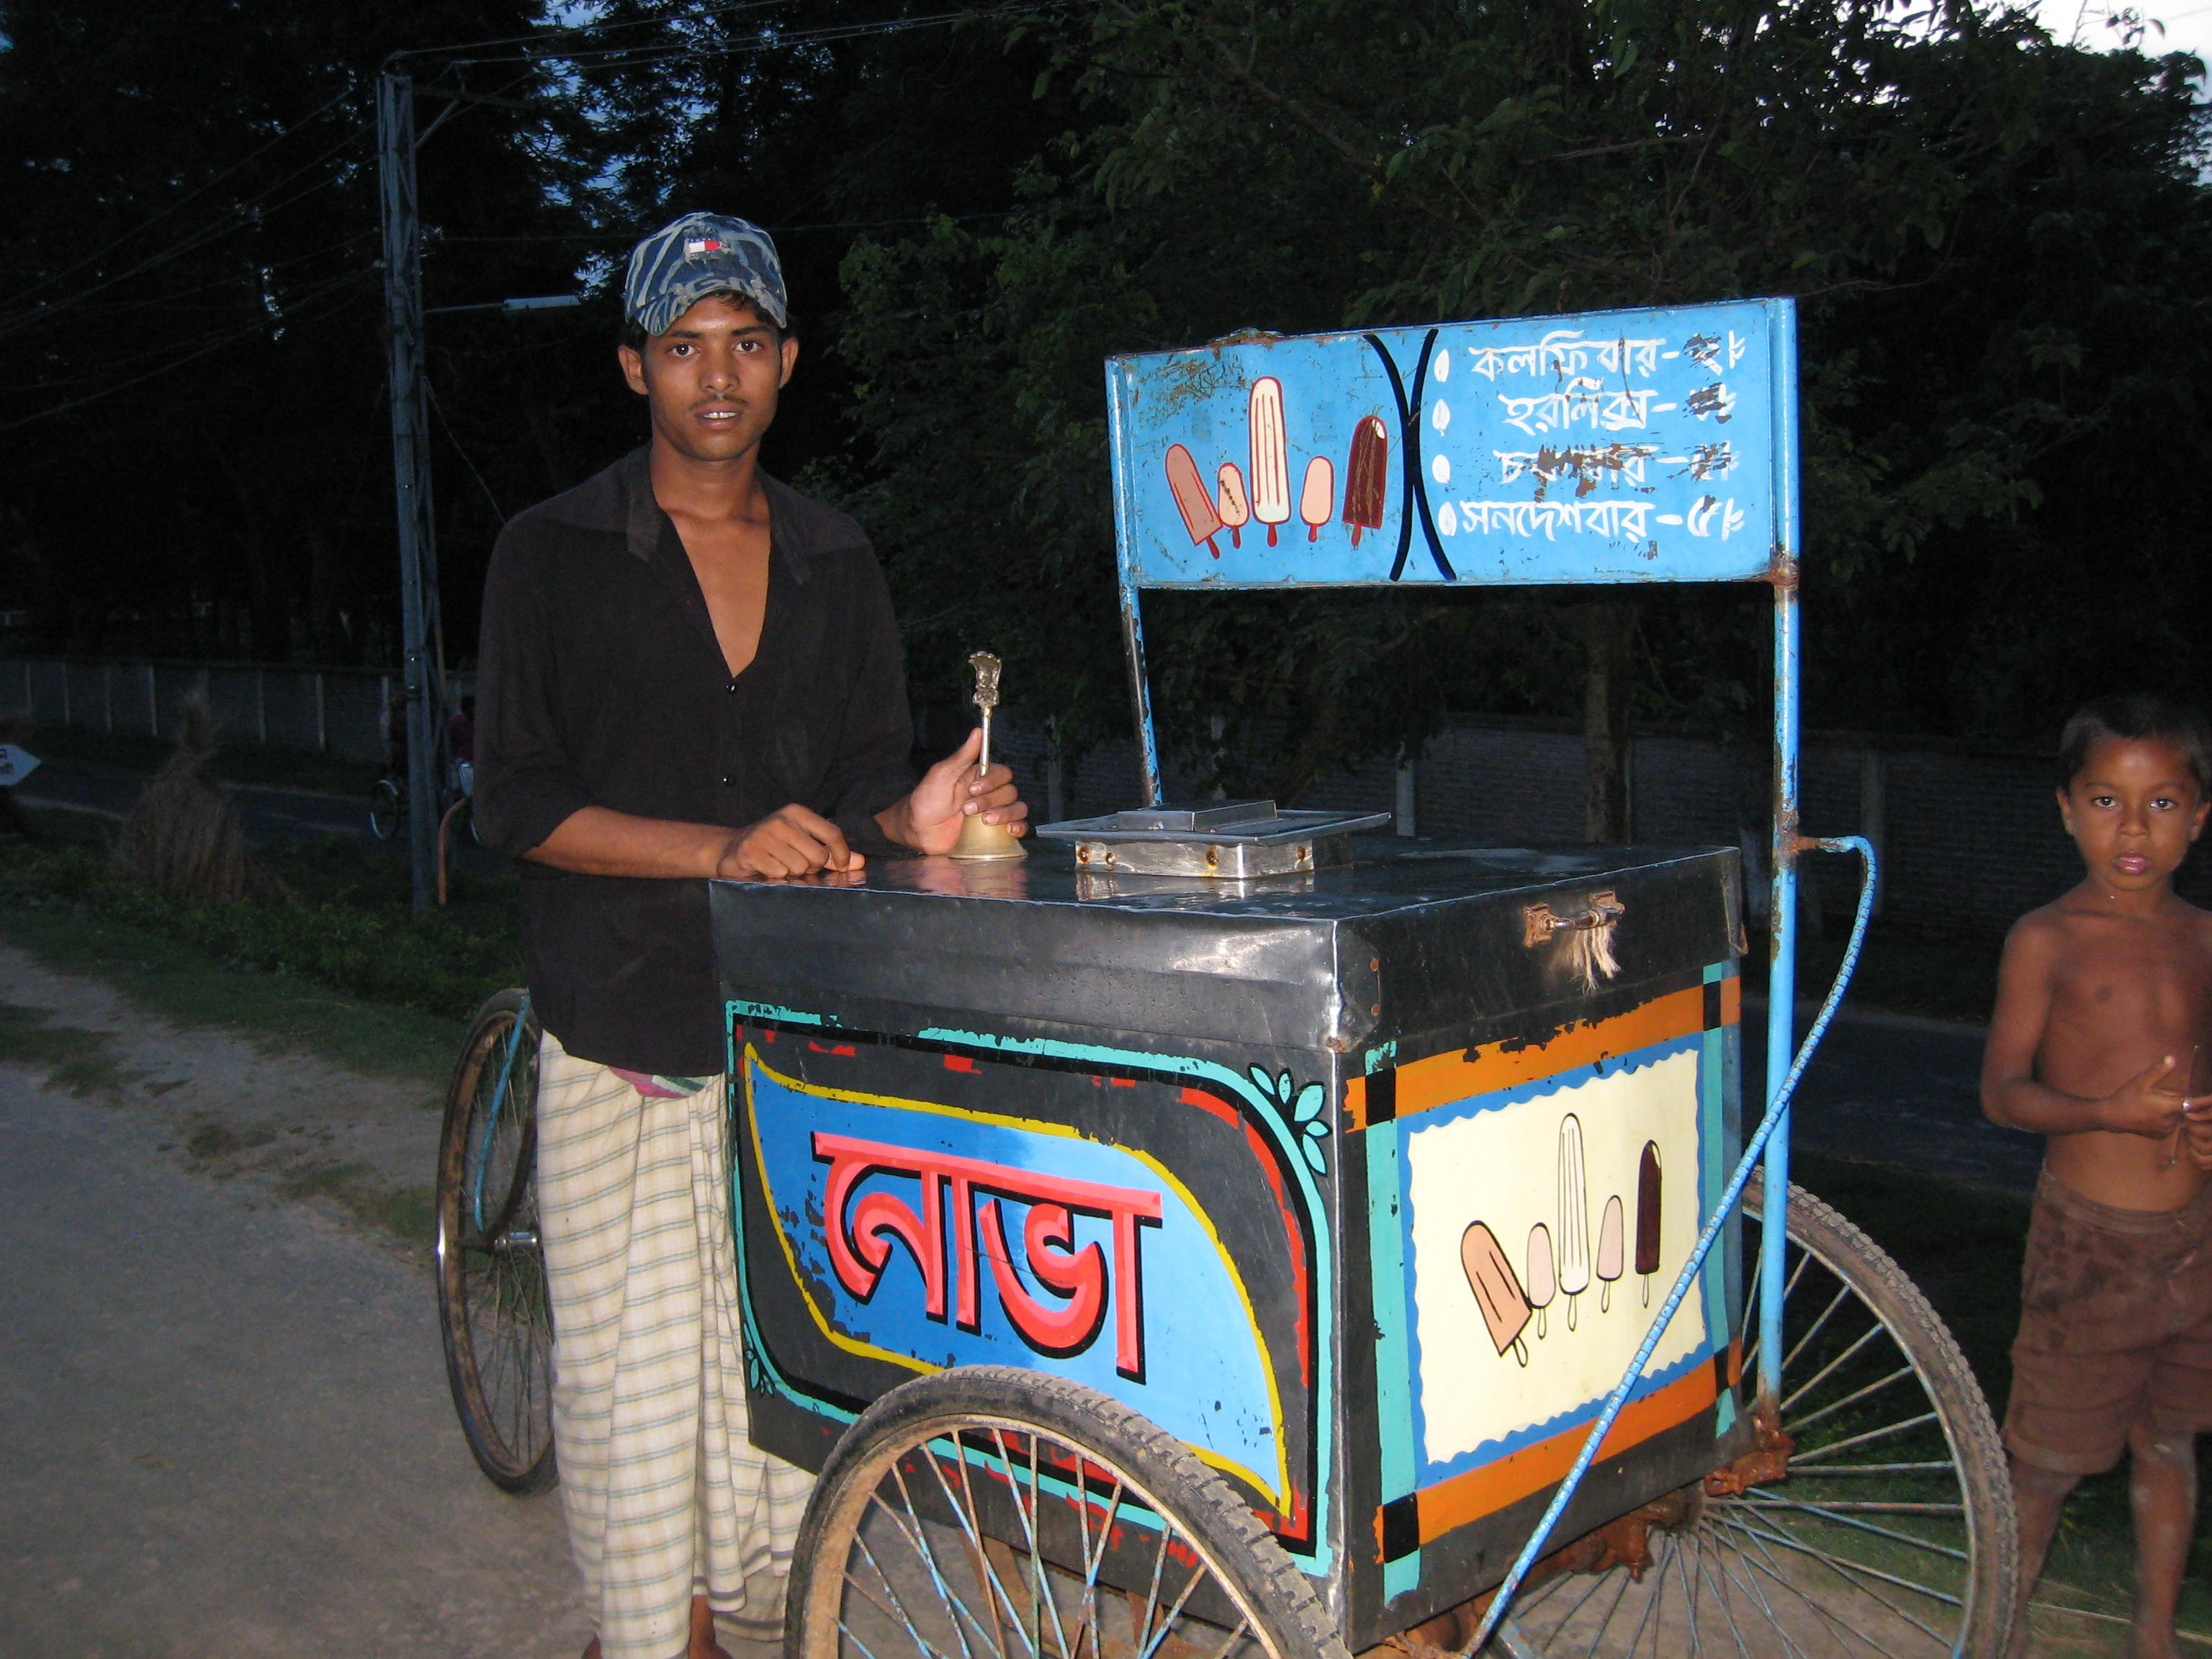 A man selling at his ice cream cart